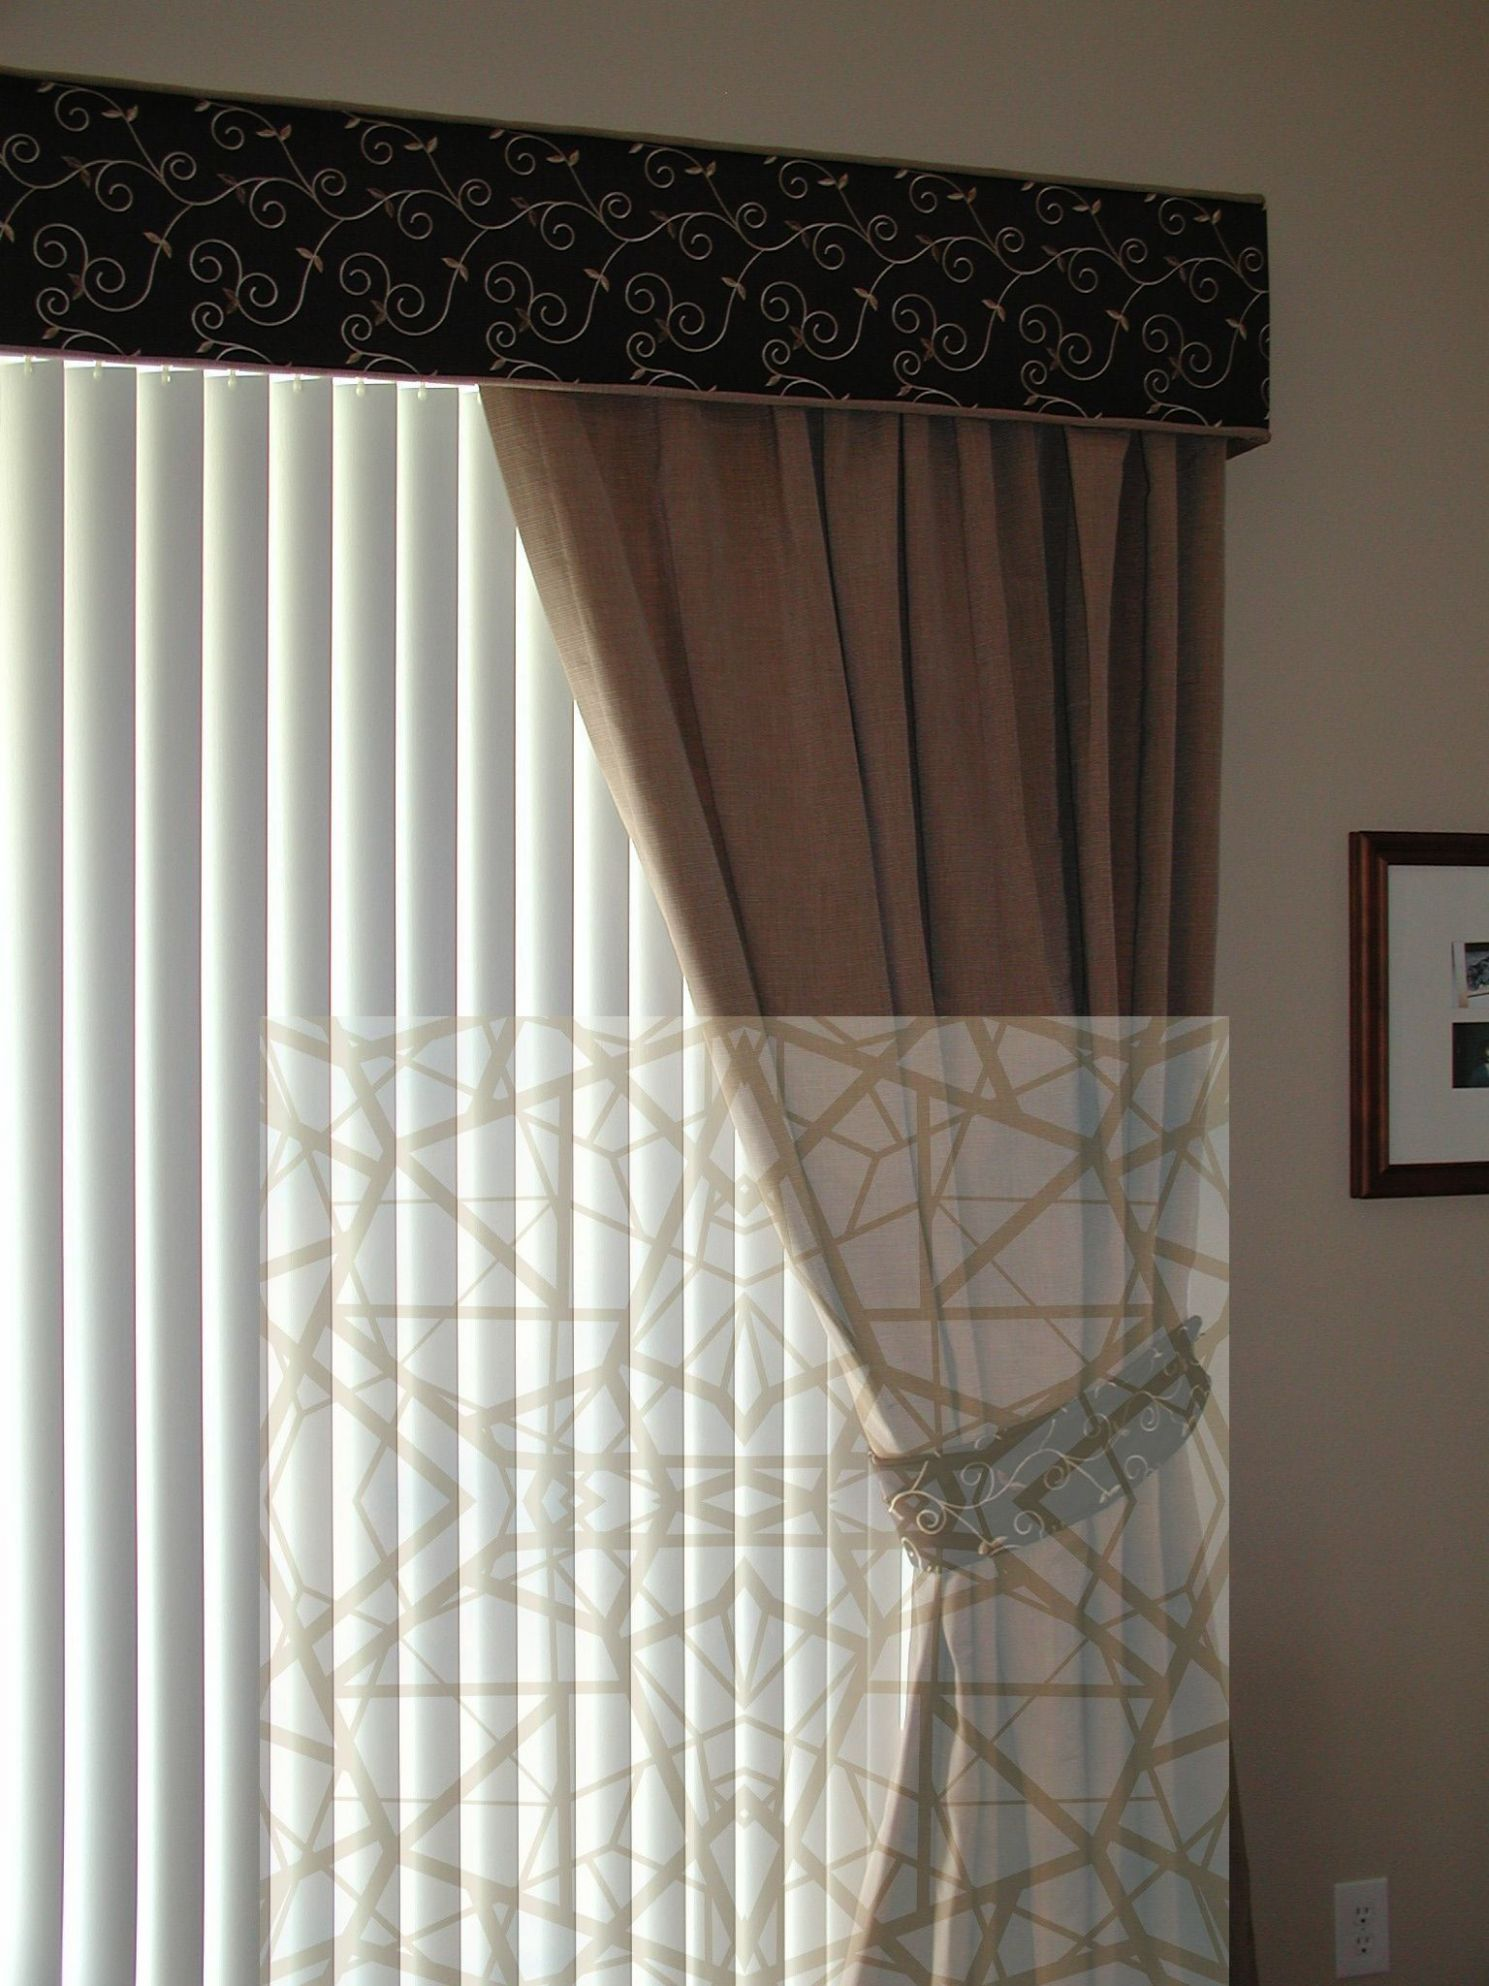 12+ Glorious Patterned Roller Blinds Ideas (With images) | Wooden ...